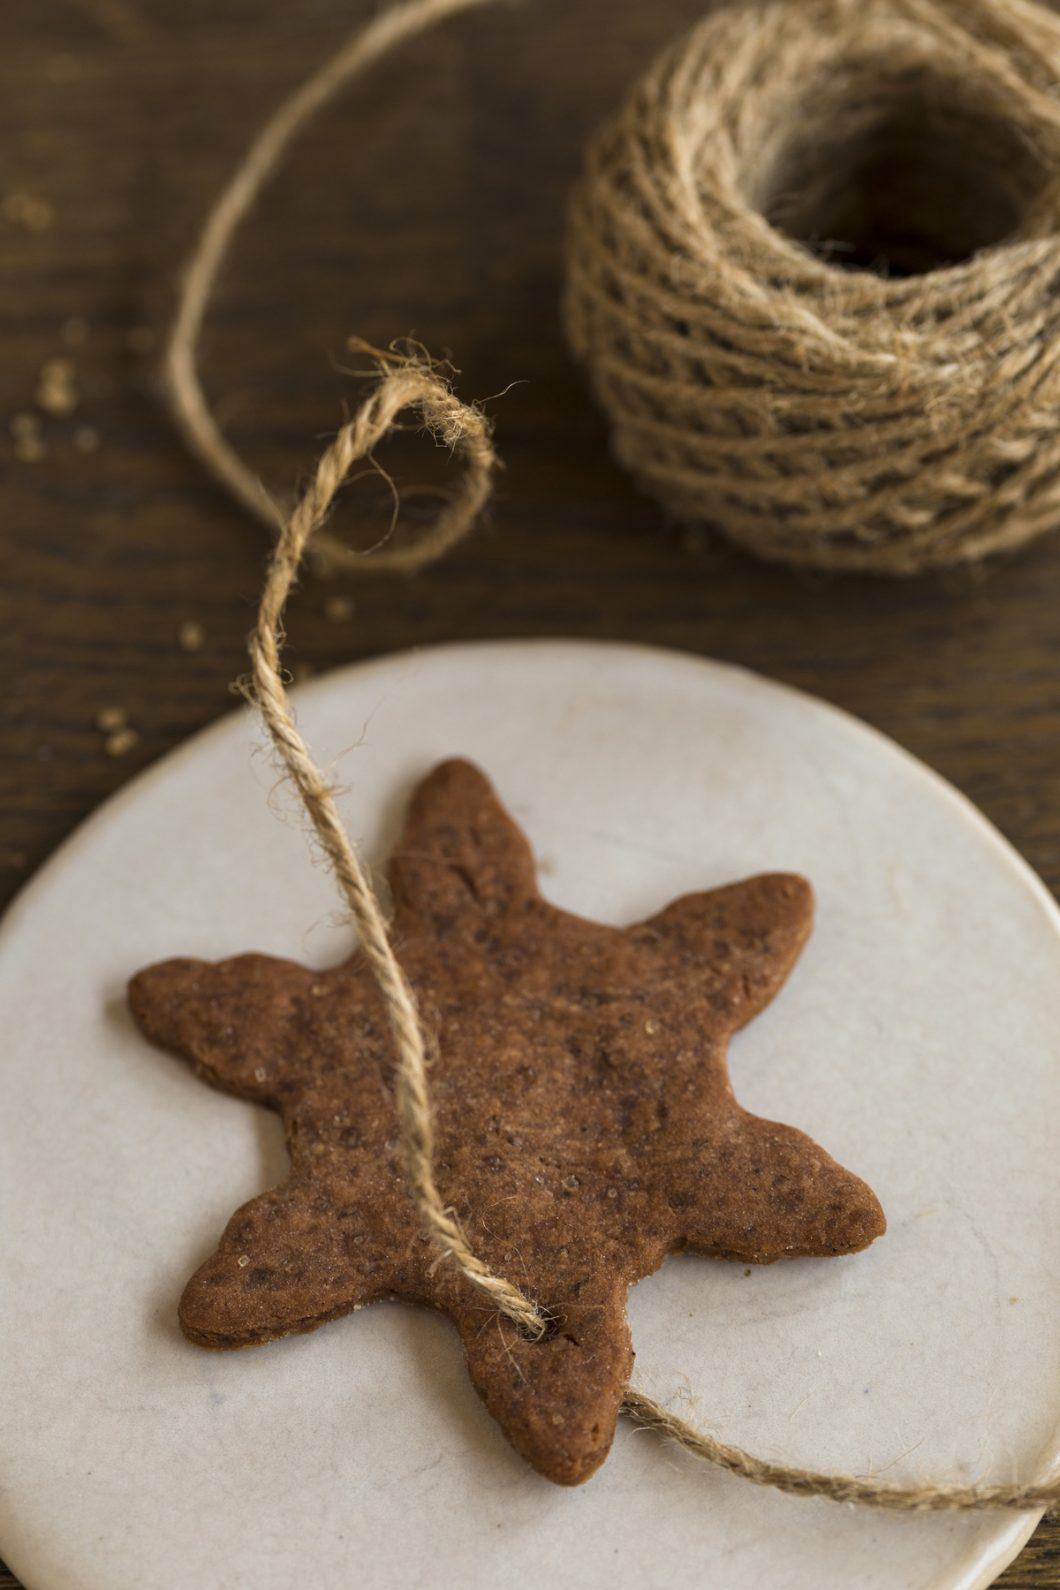 Jute twine being passed through a hole in a Swedish ginger thin cookie to use as Christmas tree ornament.